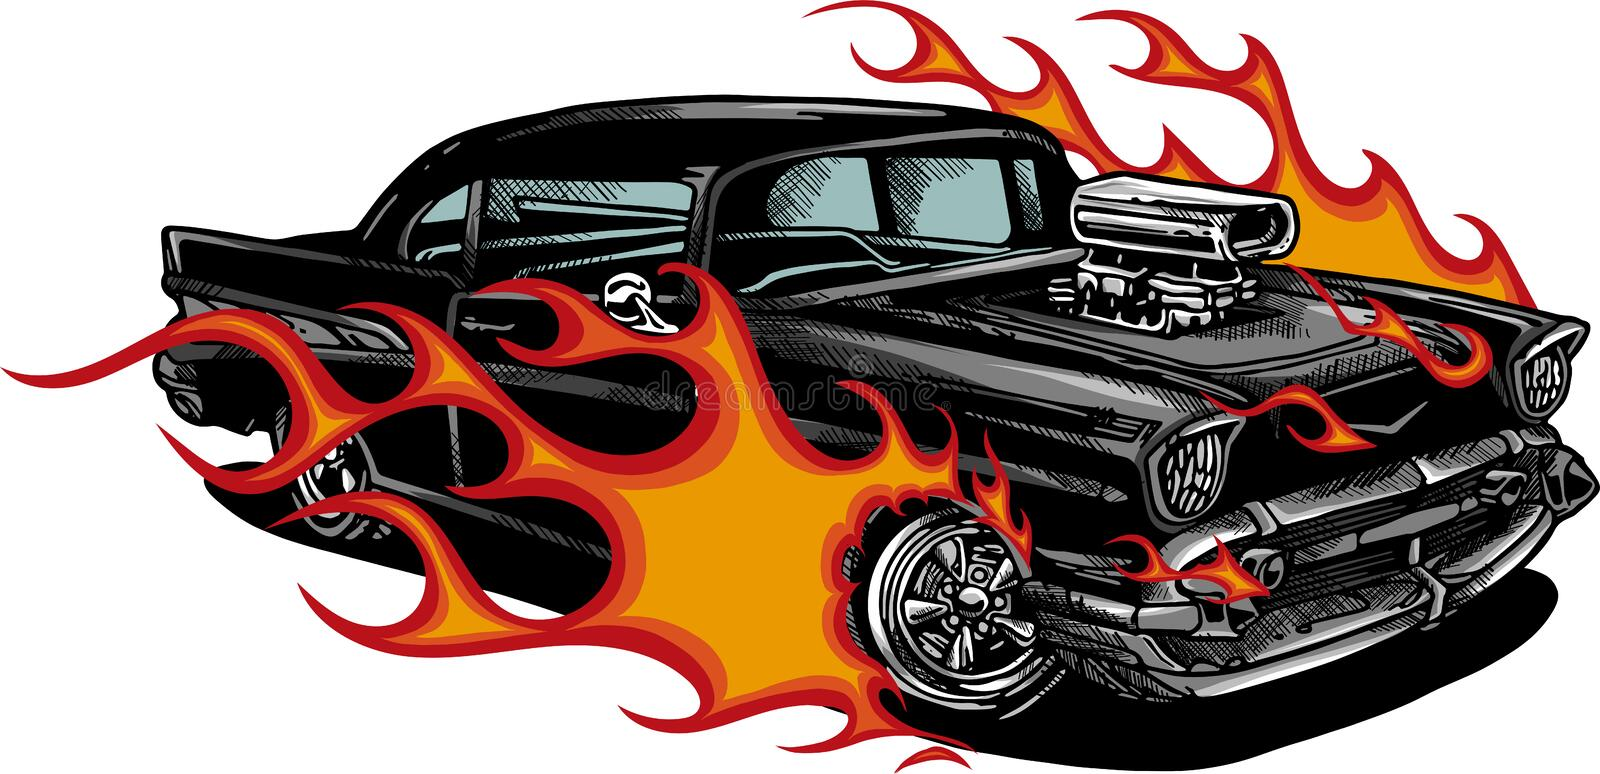 Car muscle old 70s vector illustration with flames royalty free illustration